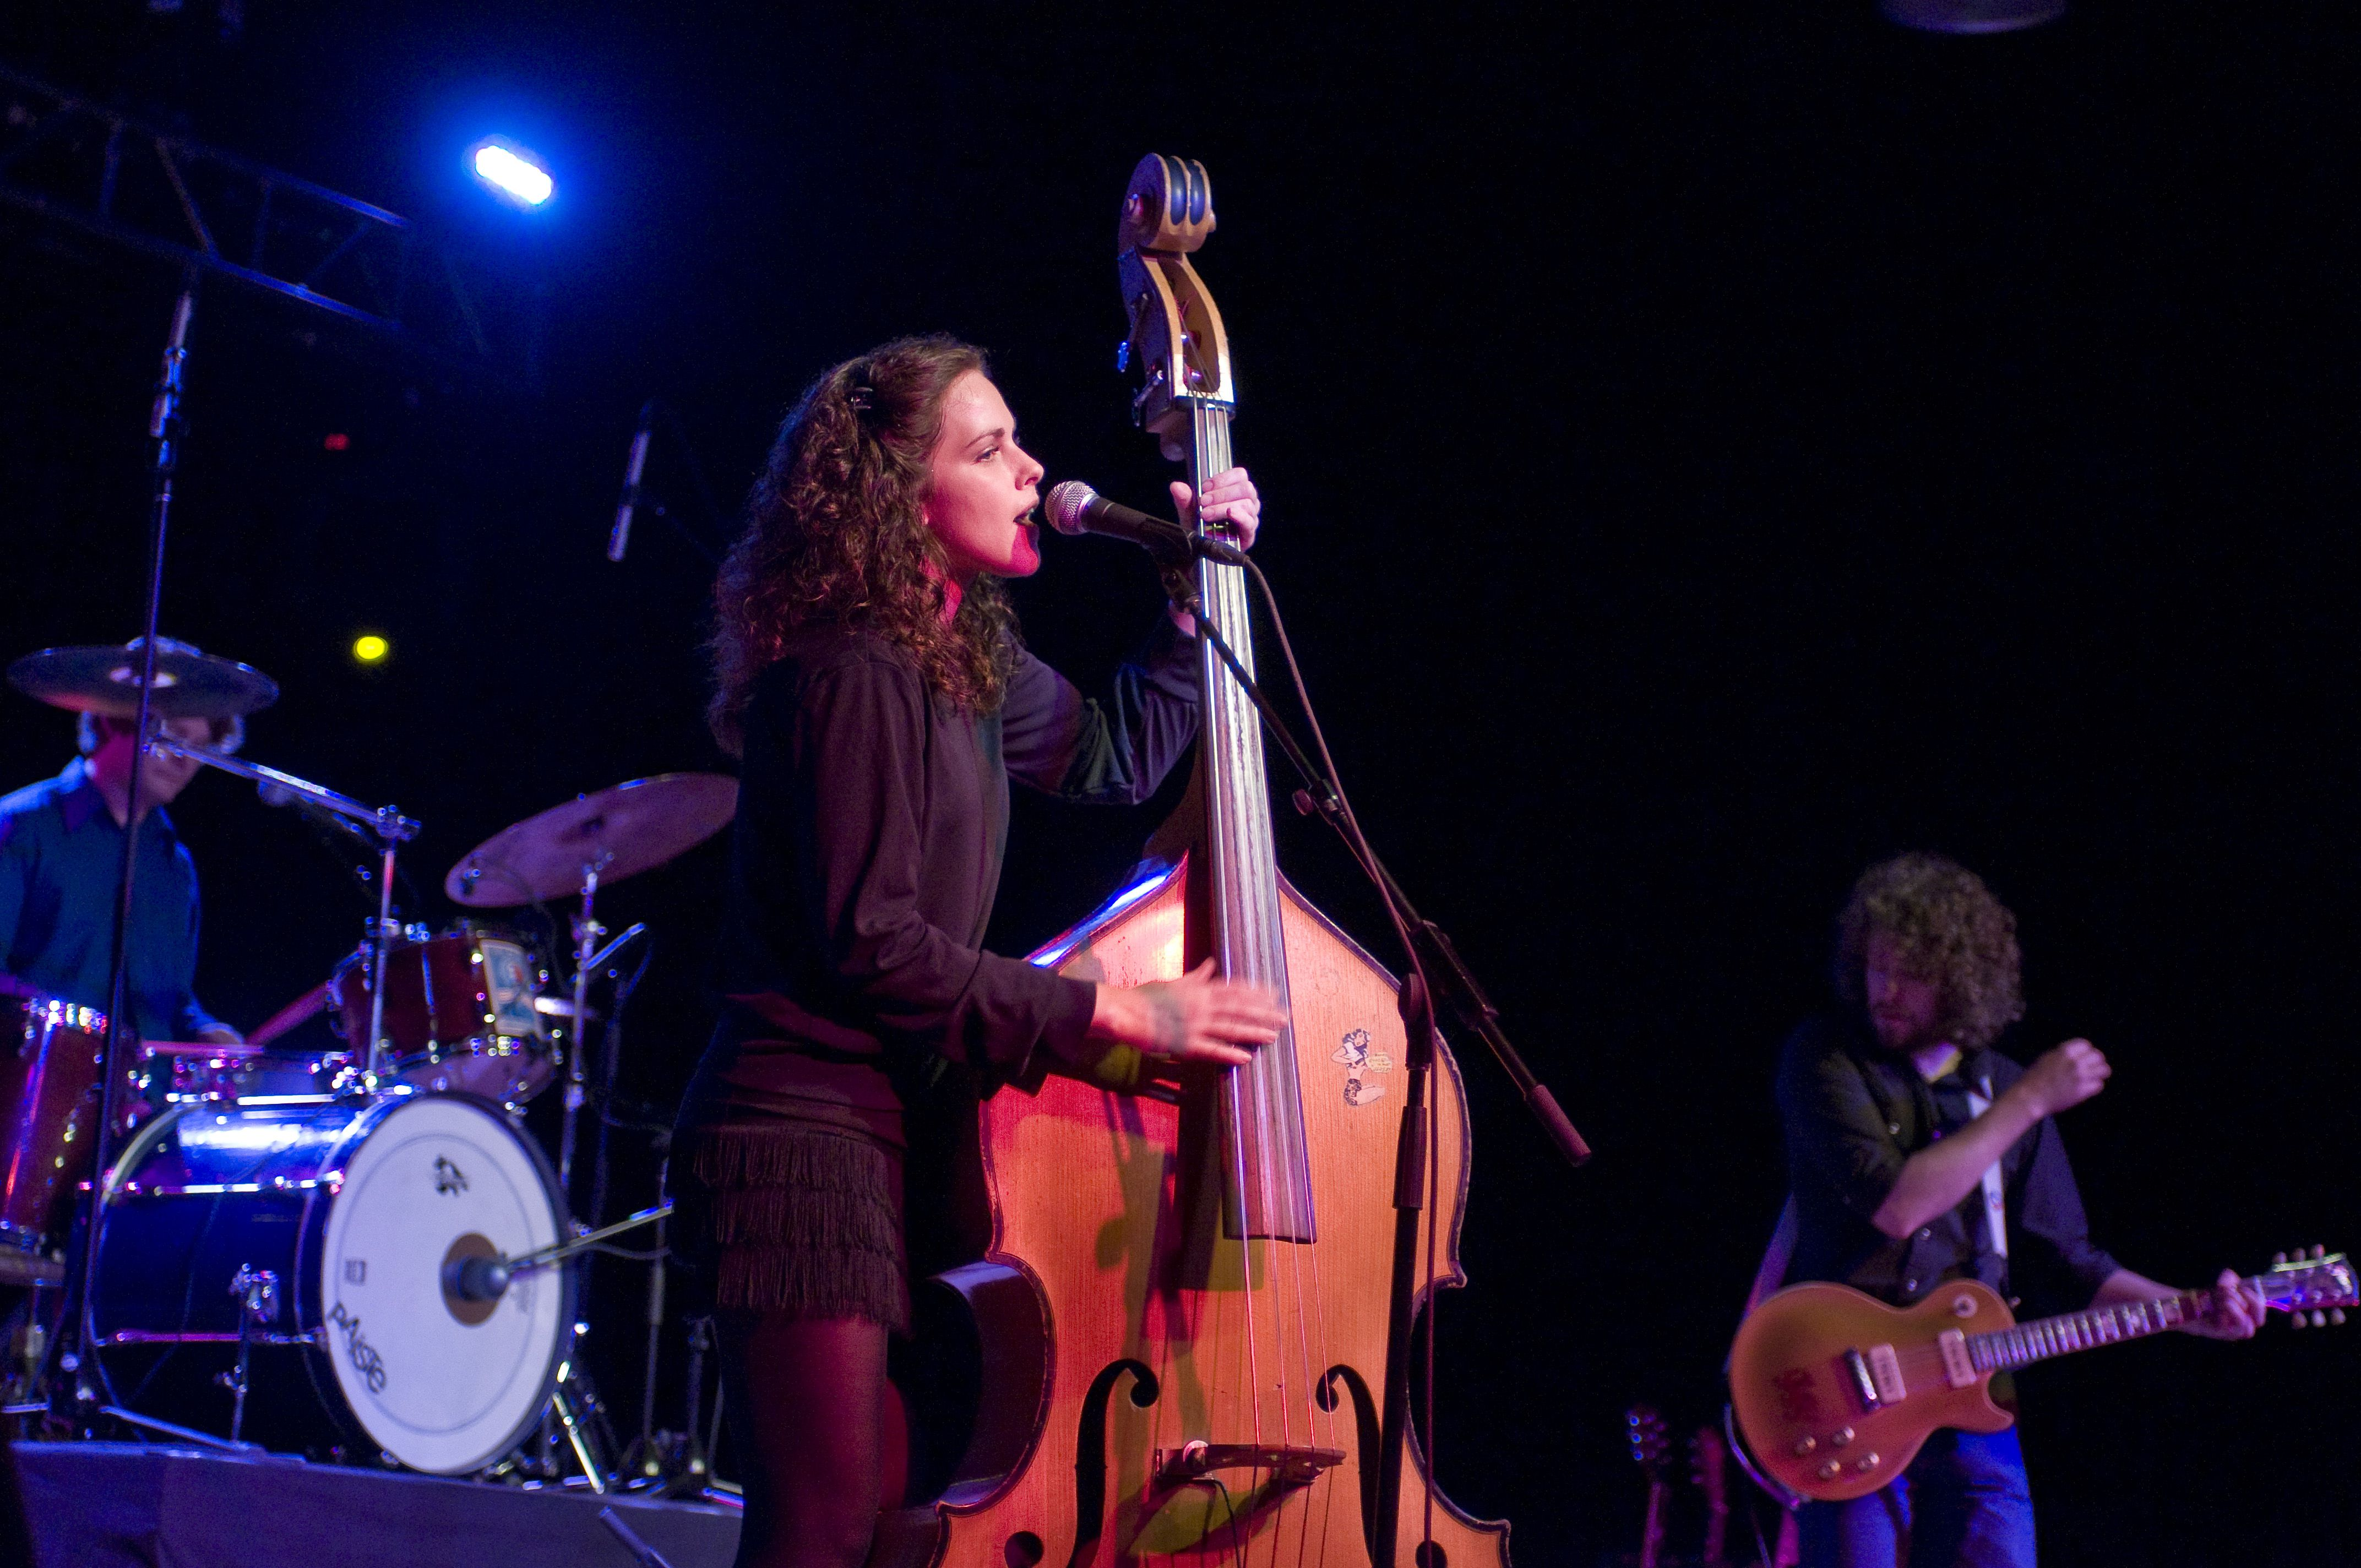 Amy LaVere and Steve Selvidge with Paul Taylor on drums performing at Minglewood Hall in Memphis